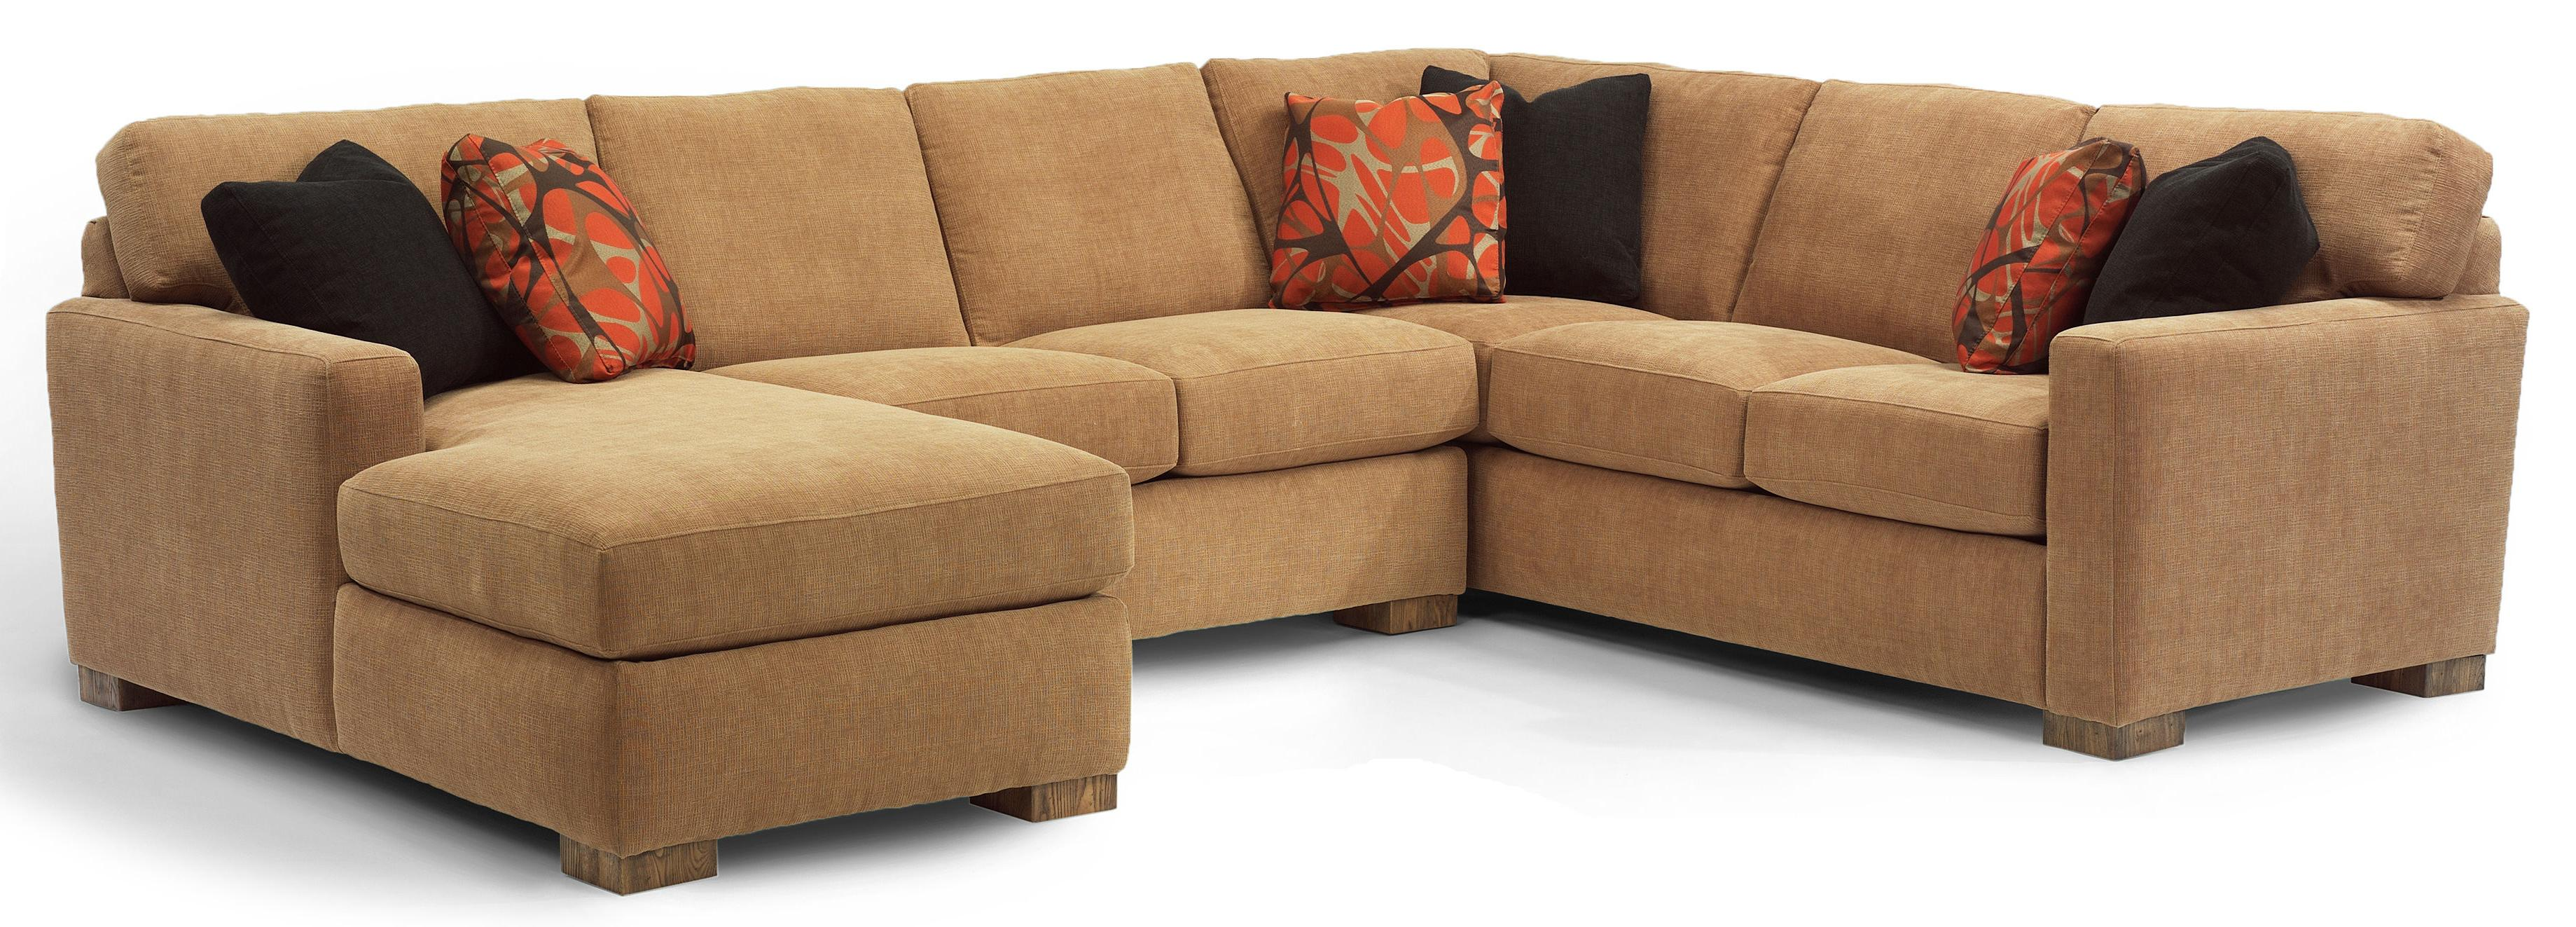 Flexsteel bryant contemporary 3 pc sectional sofa with for 3 pc sectional sofa with chaise